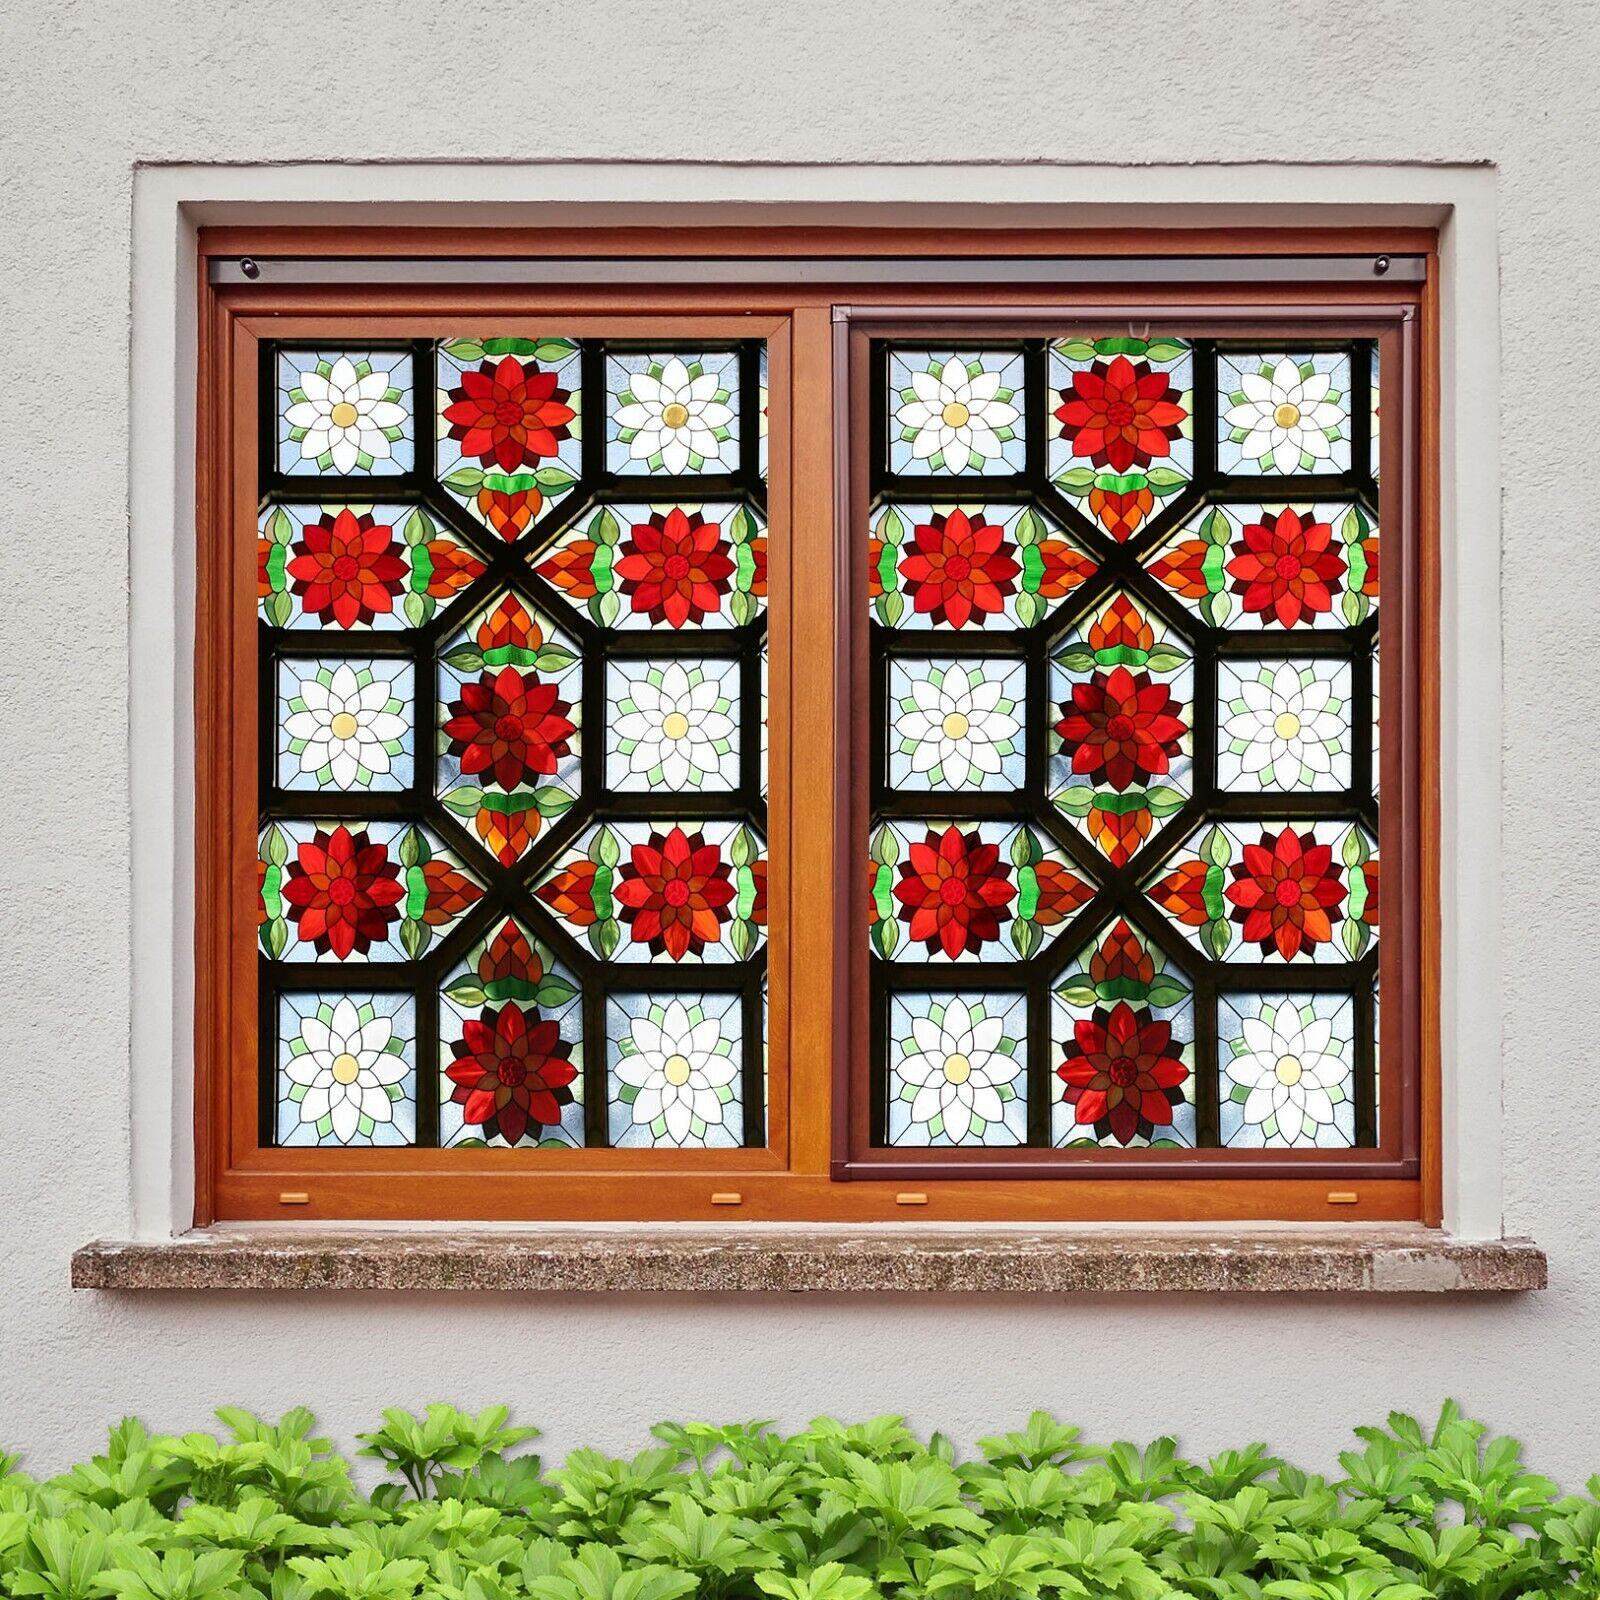 3D Window Grille N506 Window Film Print Sticker Cling Stained Glass UV Block Amy